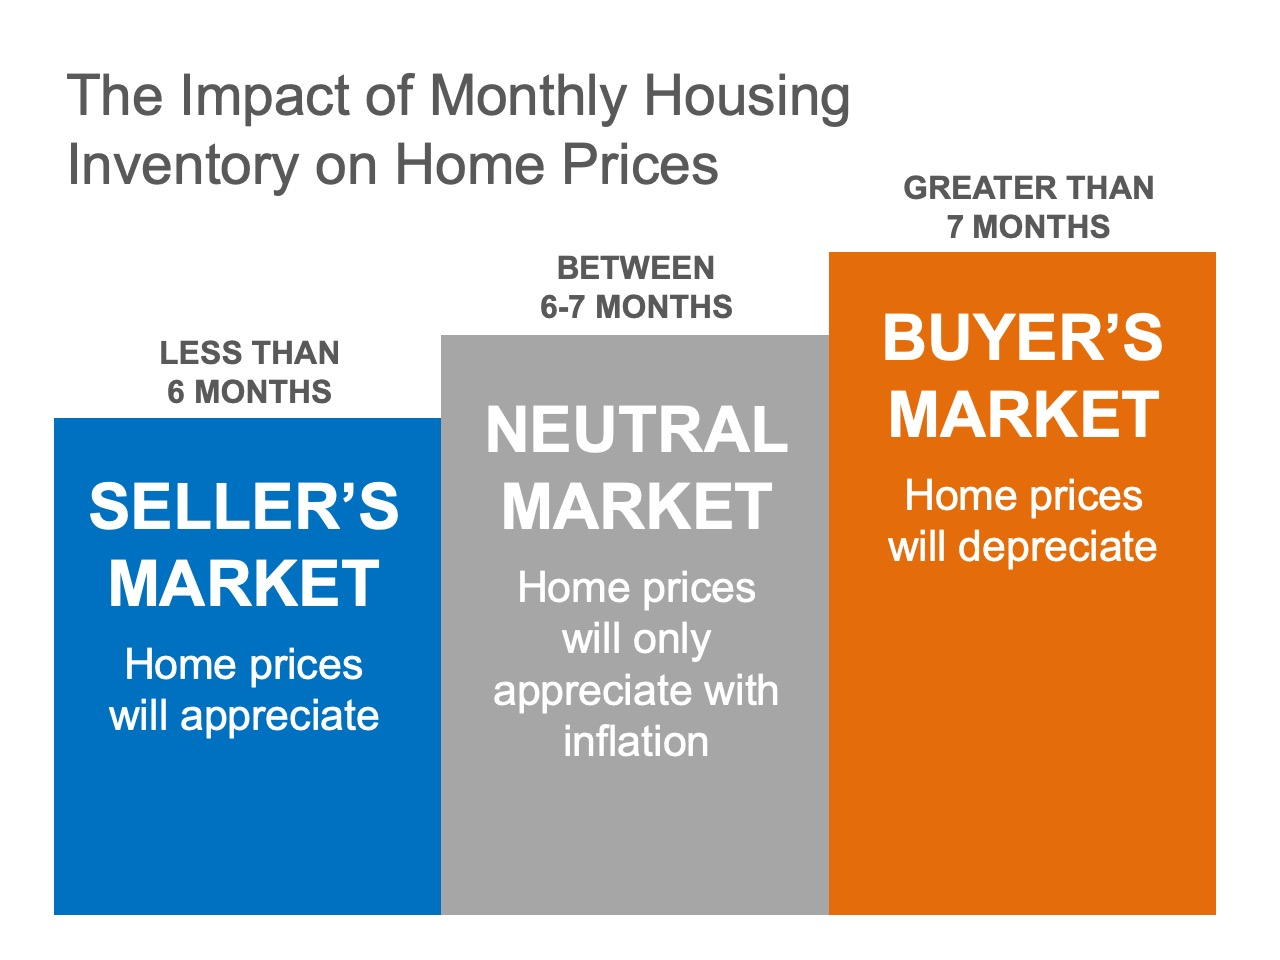 Existing-Home Sales Report Indicates Now Is a Great Time to Sell   Simplifying The Market